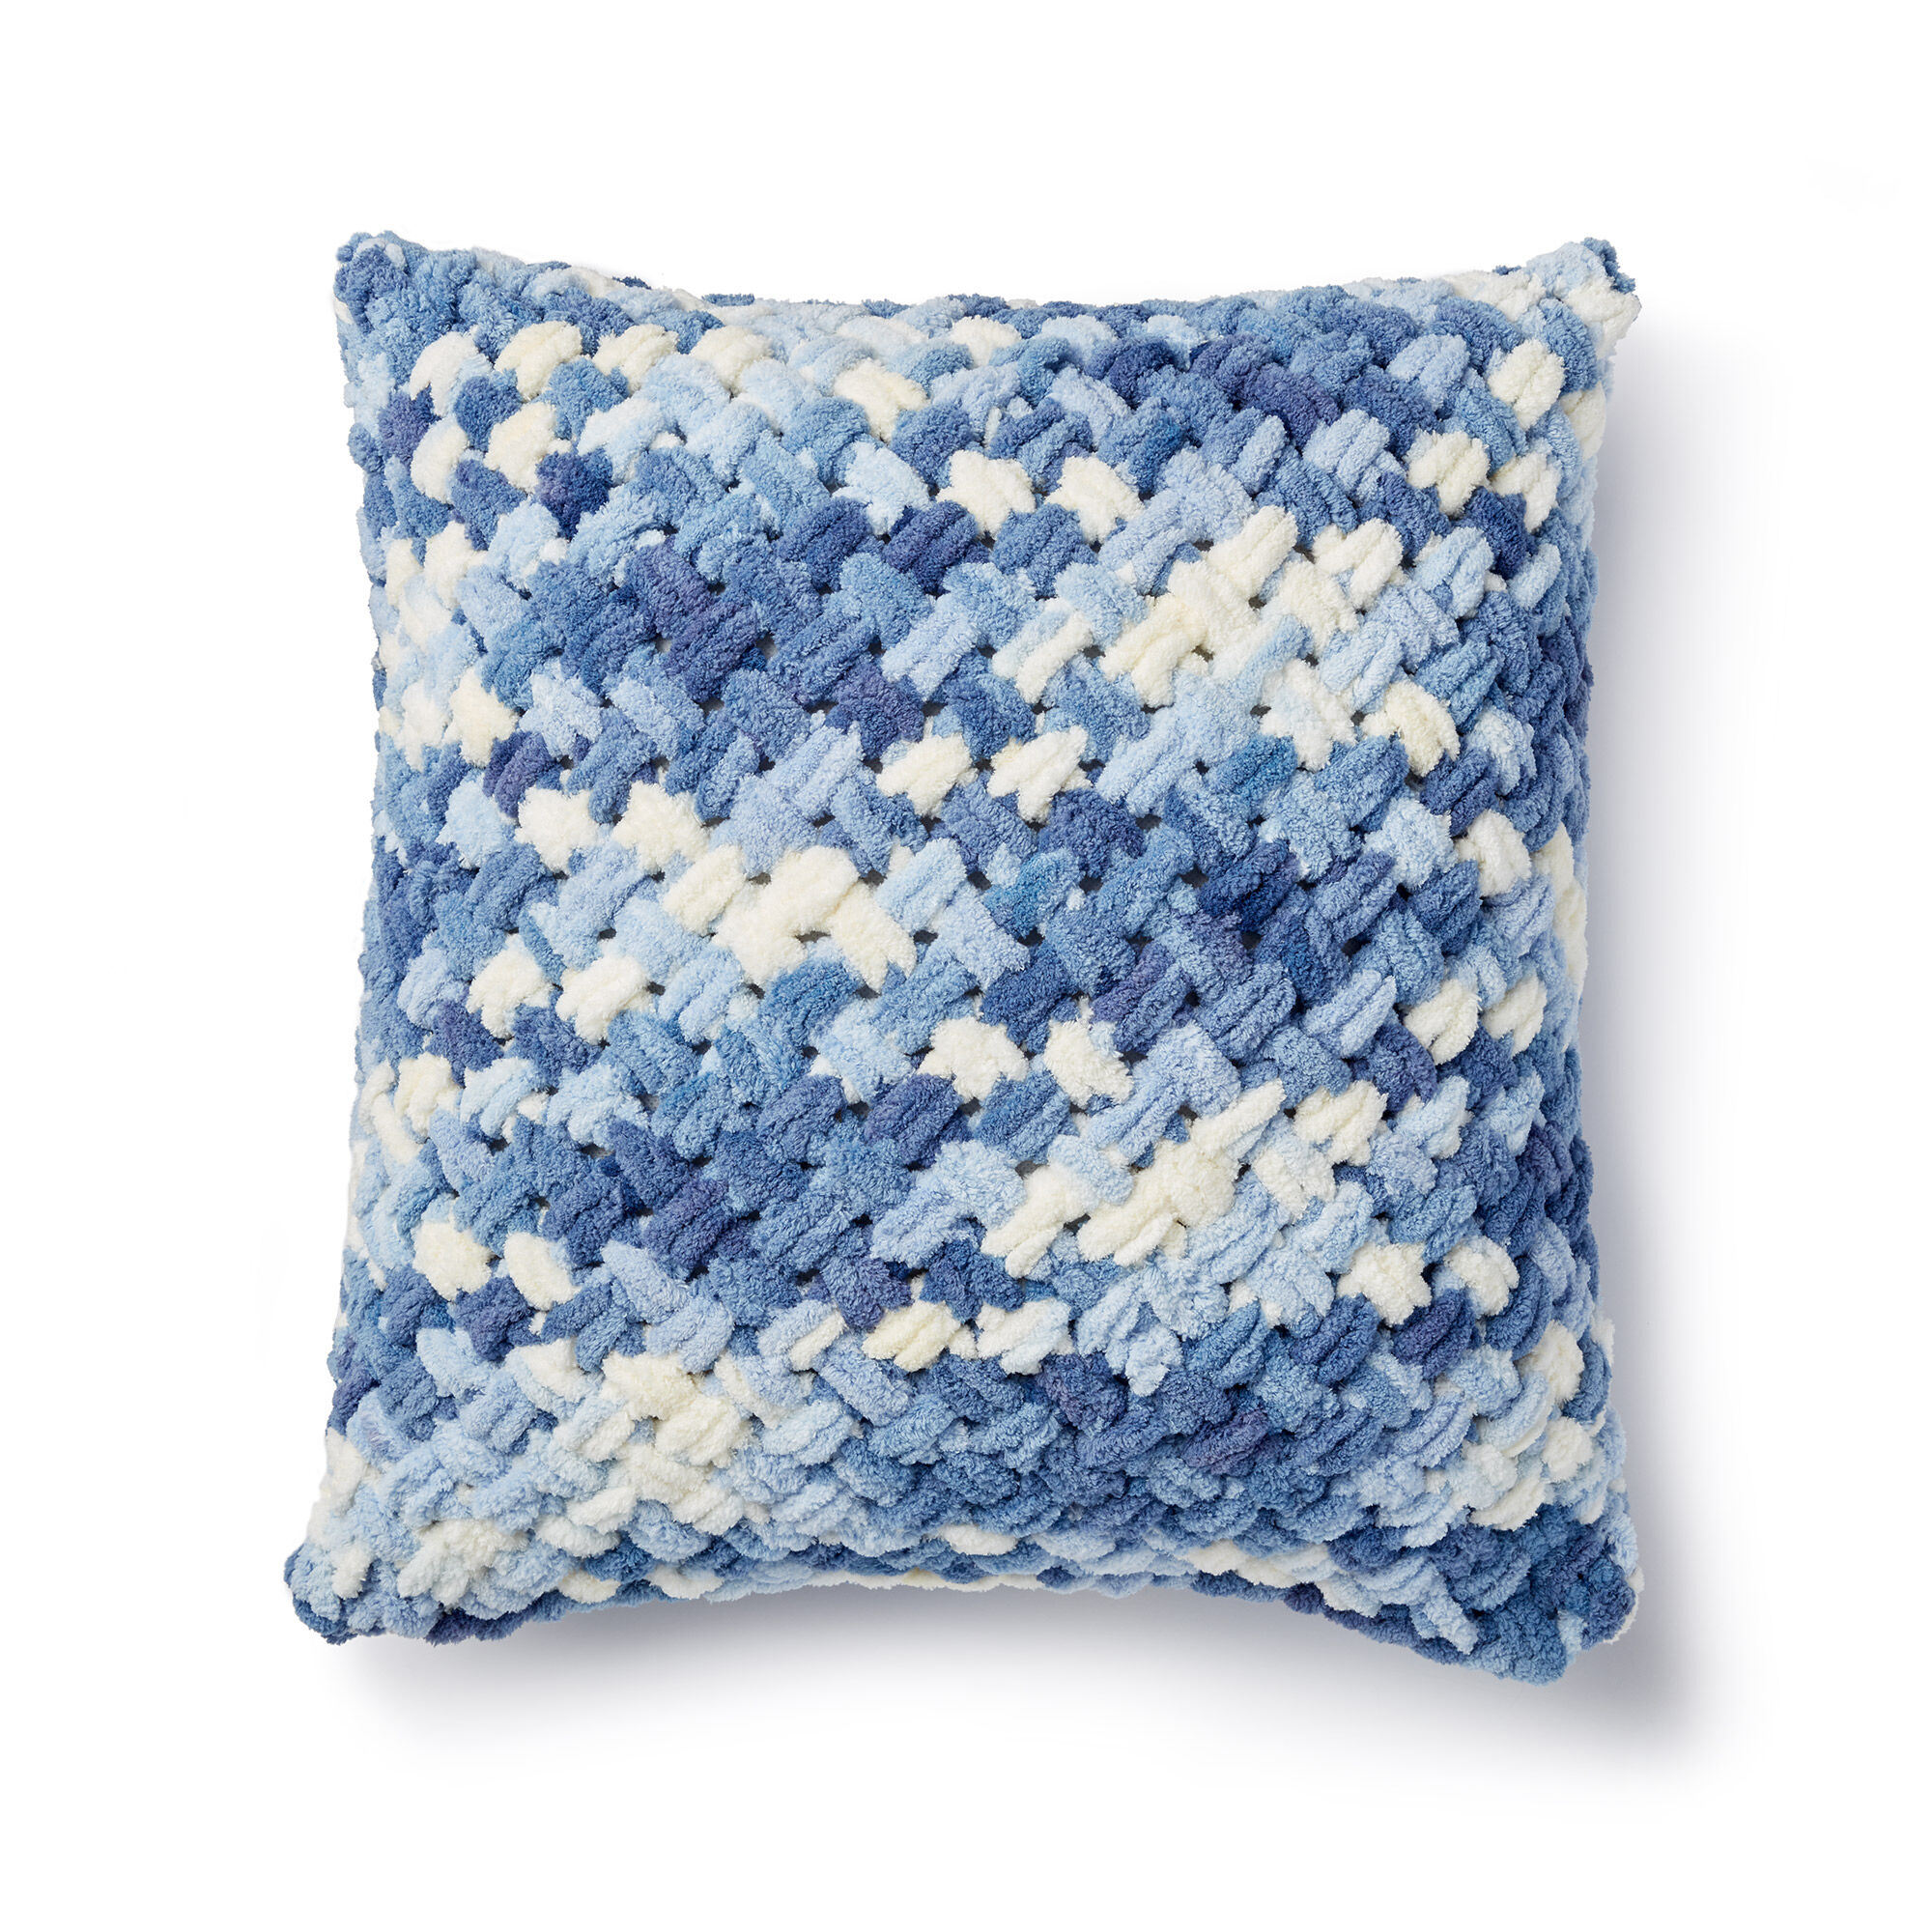 Bernat Alize Ez Criss Cross Pillow Pattern Yarnspirations